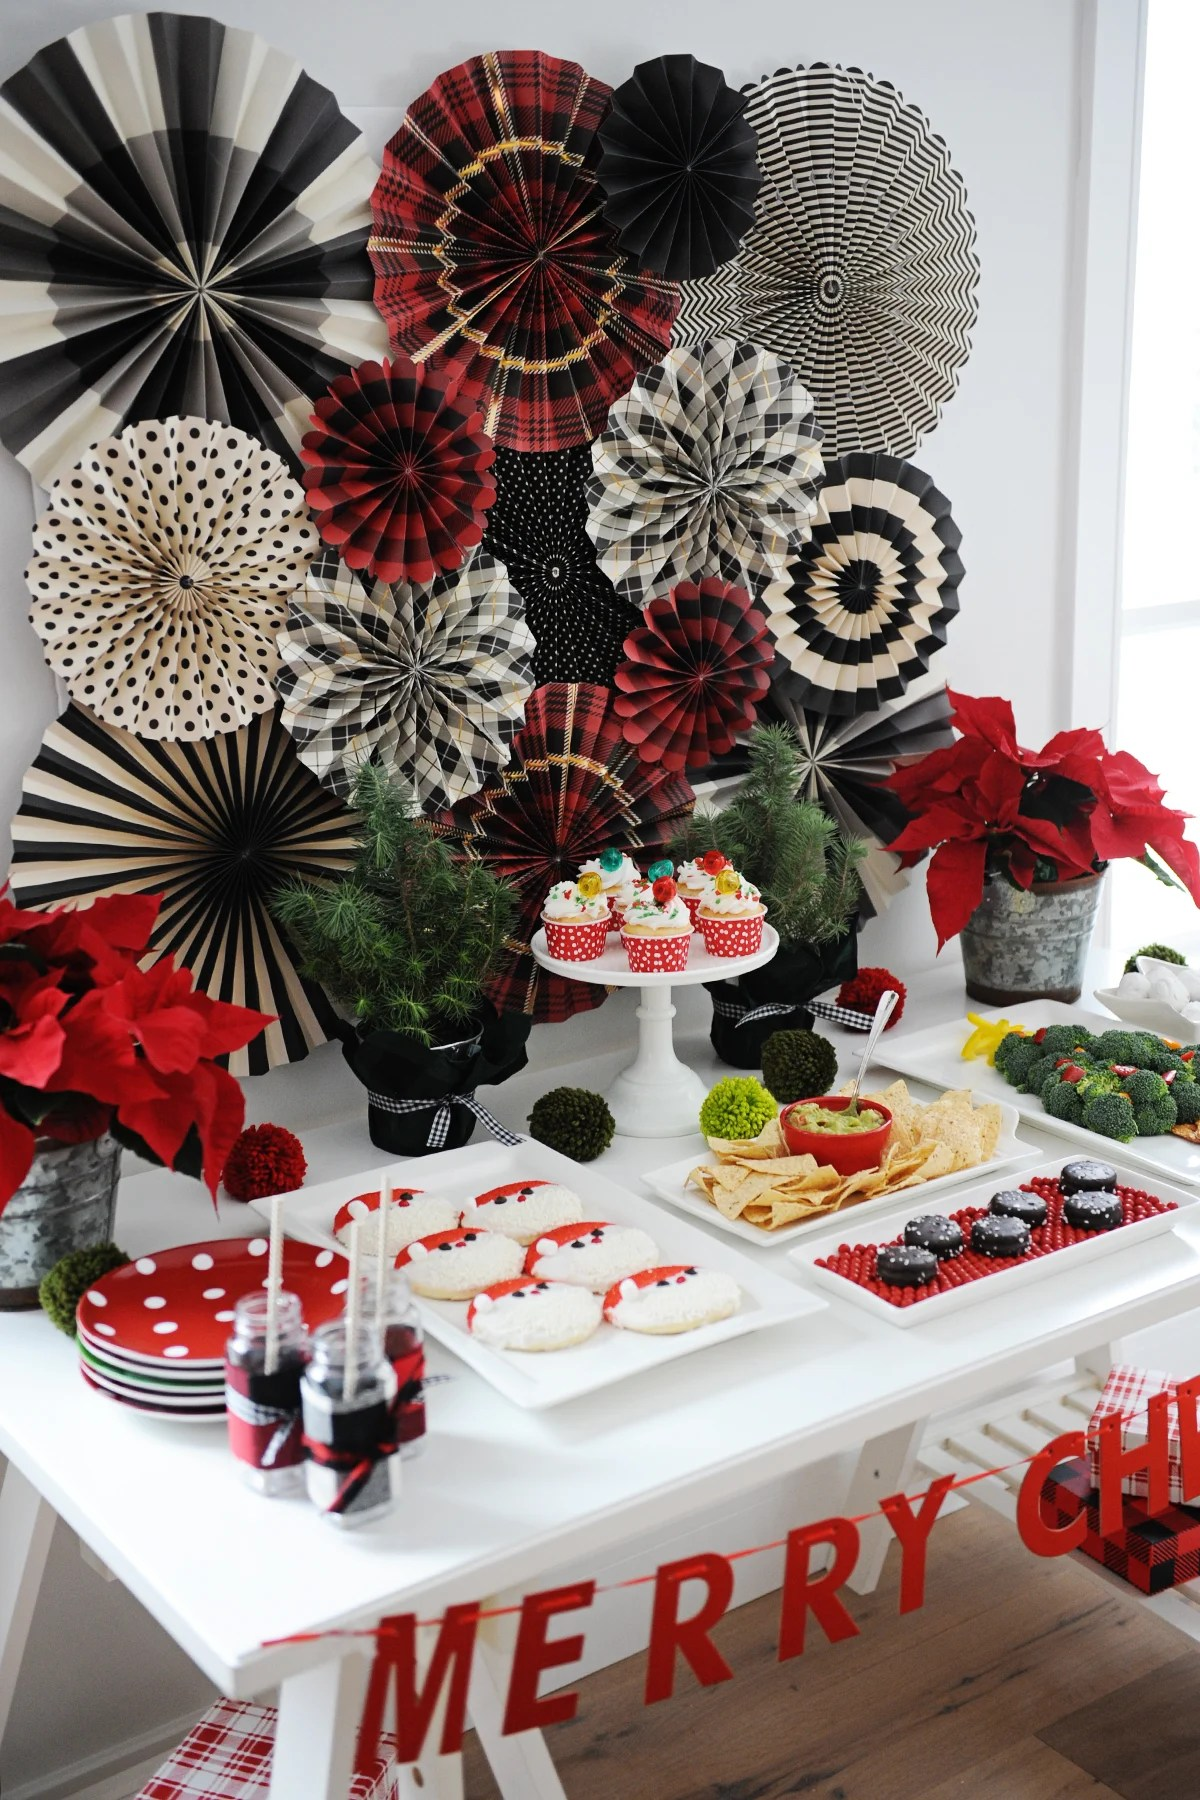 Ugly sweater party ideas